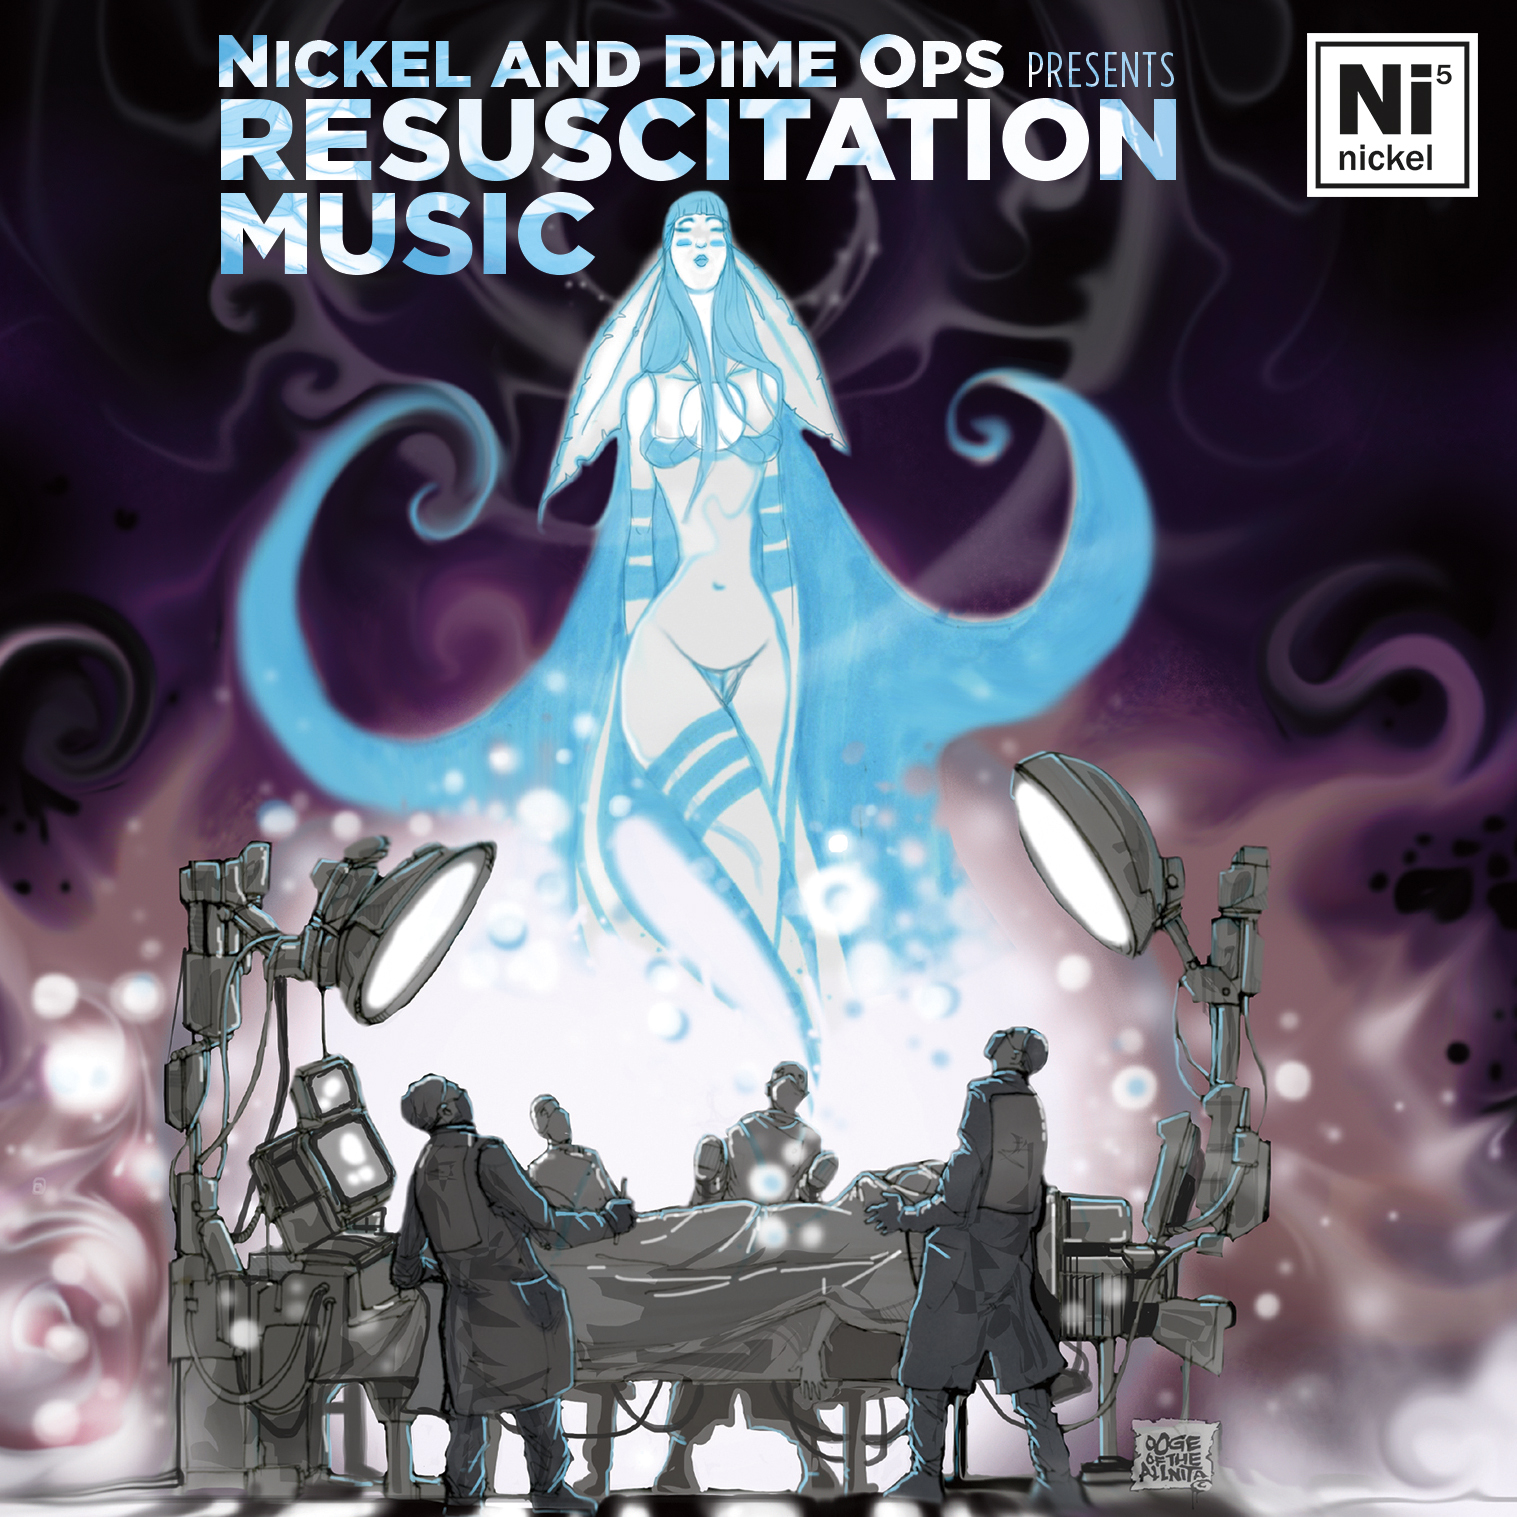 Resuscitation Music - In 2017 Nickel and Dime Ops completed a successful crowd funding campaign which allowed them to get into the studio to record their latest album. The result is a 13 track musical and lyrical masterpiece they are titling Resuscitation Music.The album features several guest vocalists including, Jean Baylor, Camille Thurman, and Boyd of Phantom Vanity.Sakeenah Benjamin of Radio One says,